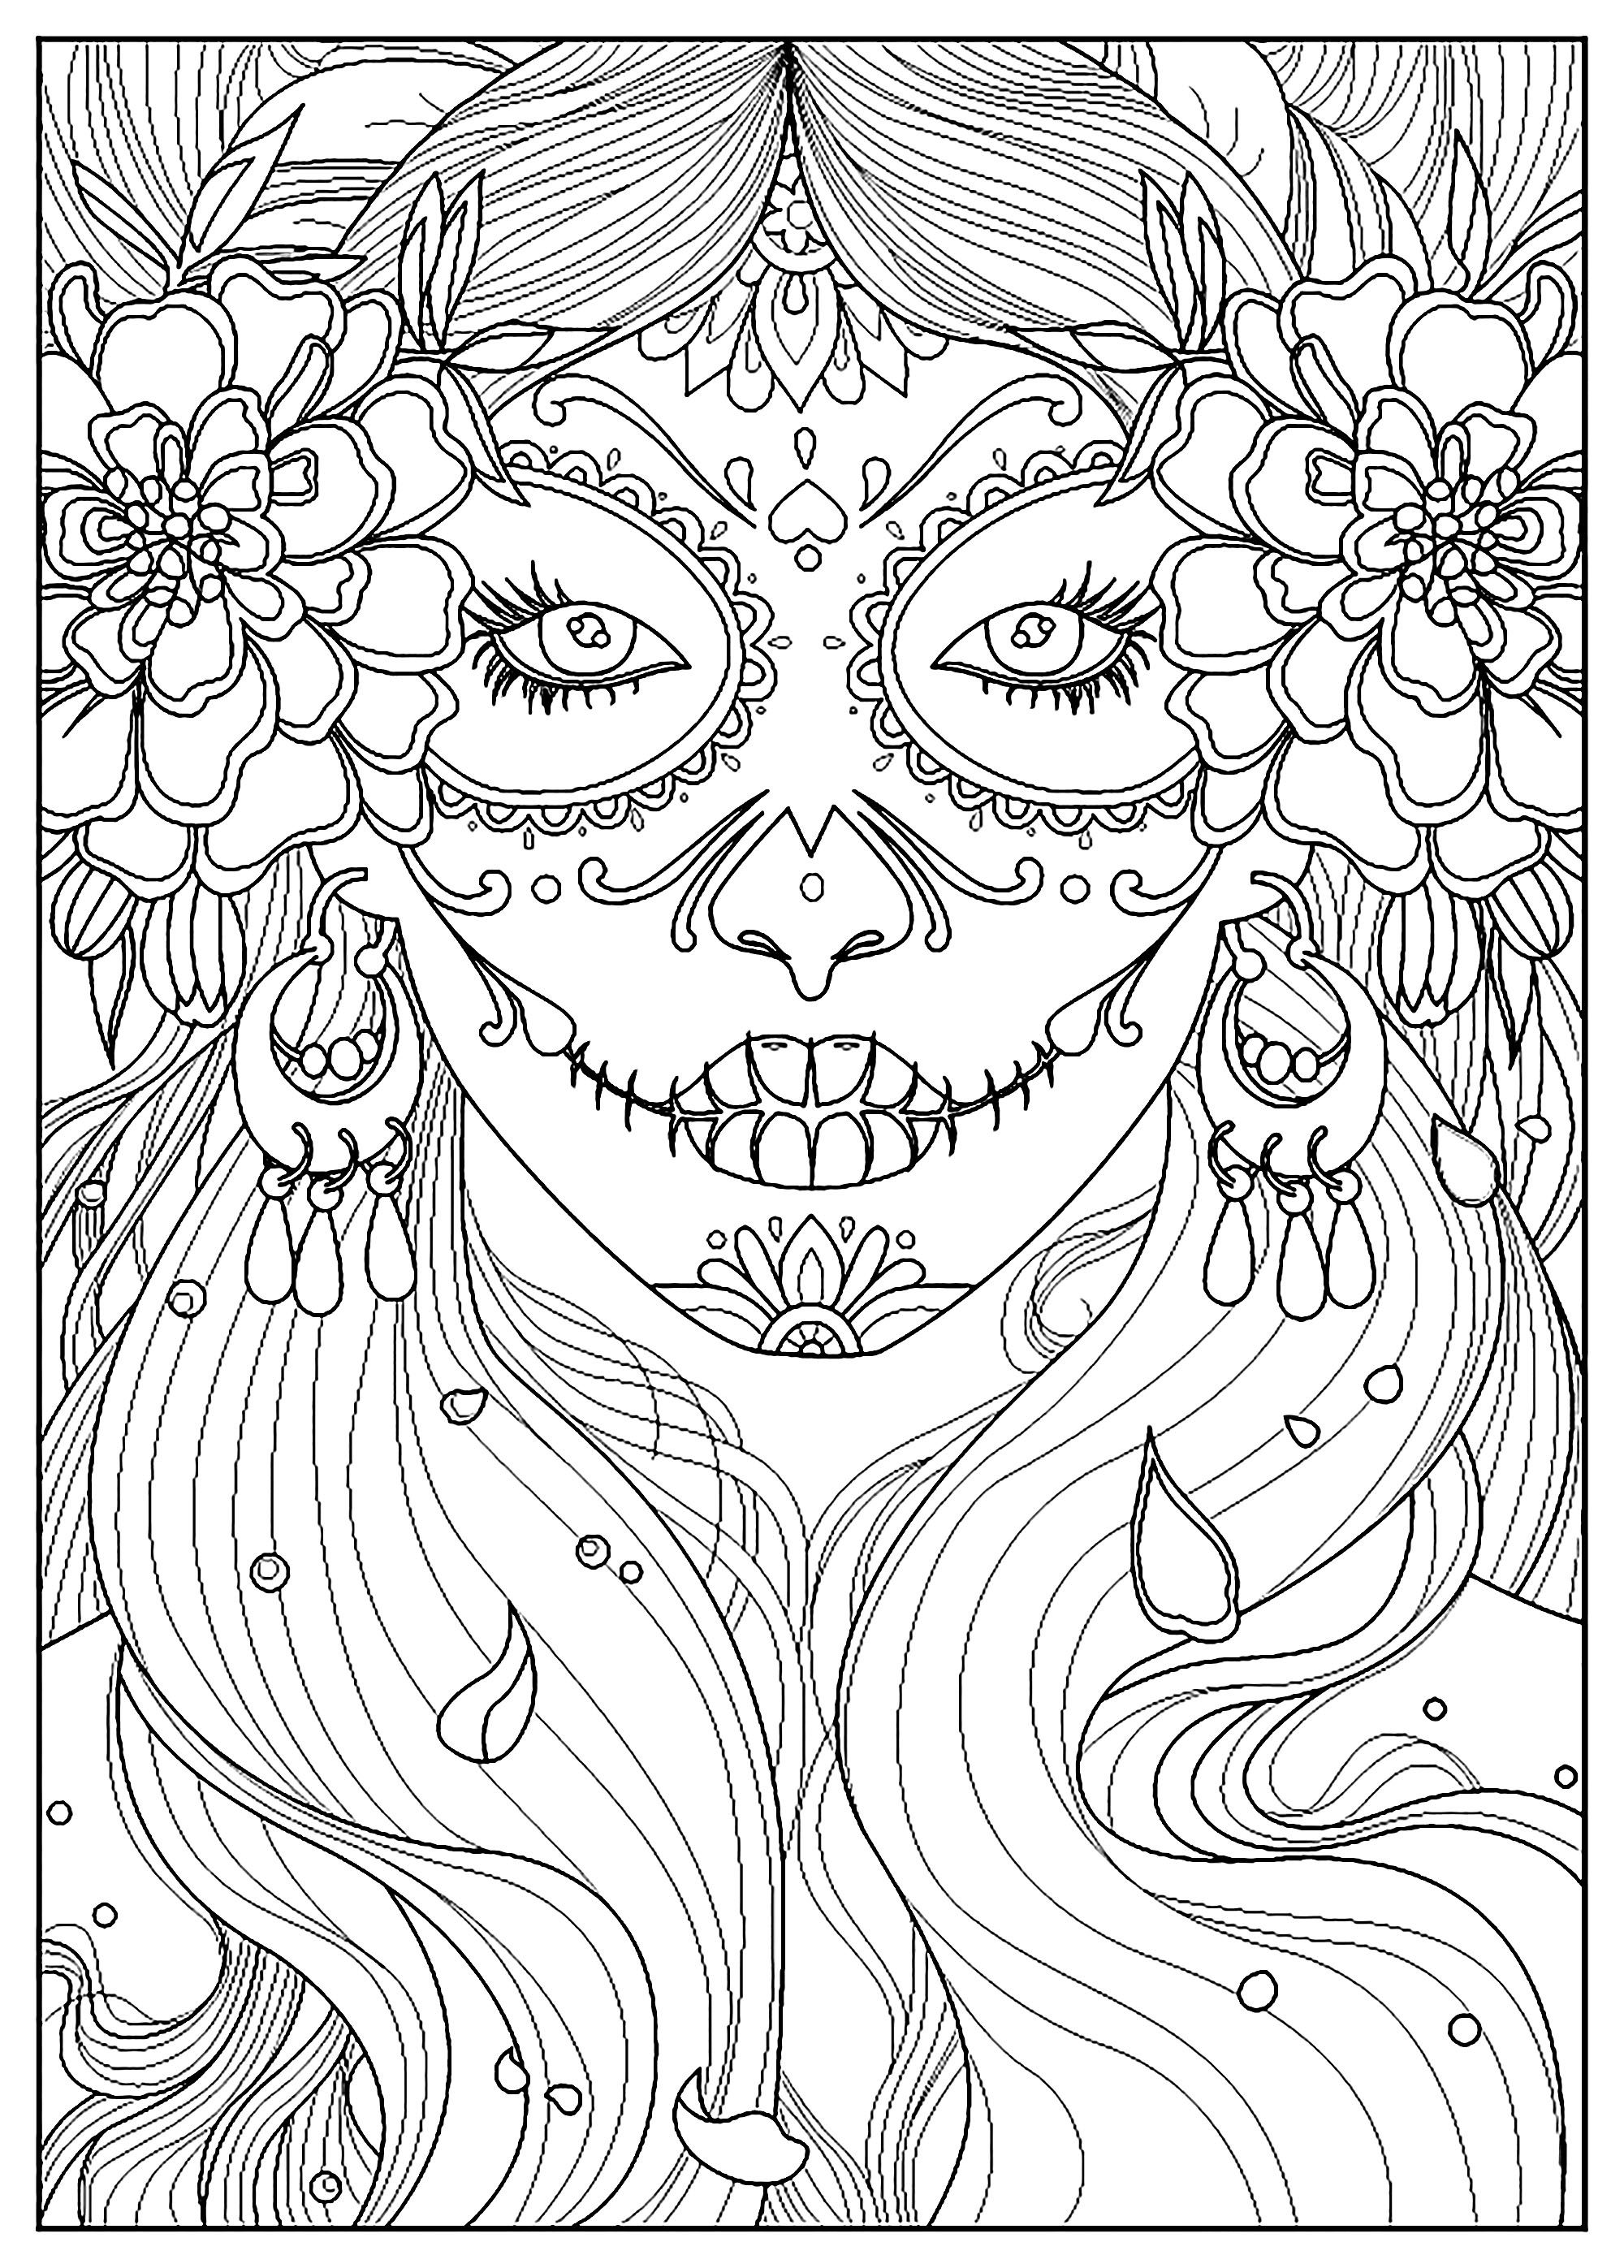 - Day Of The Dead - El Dia De Los Muertos Coloring Pages For Adults